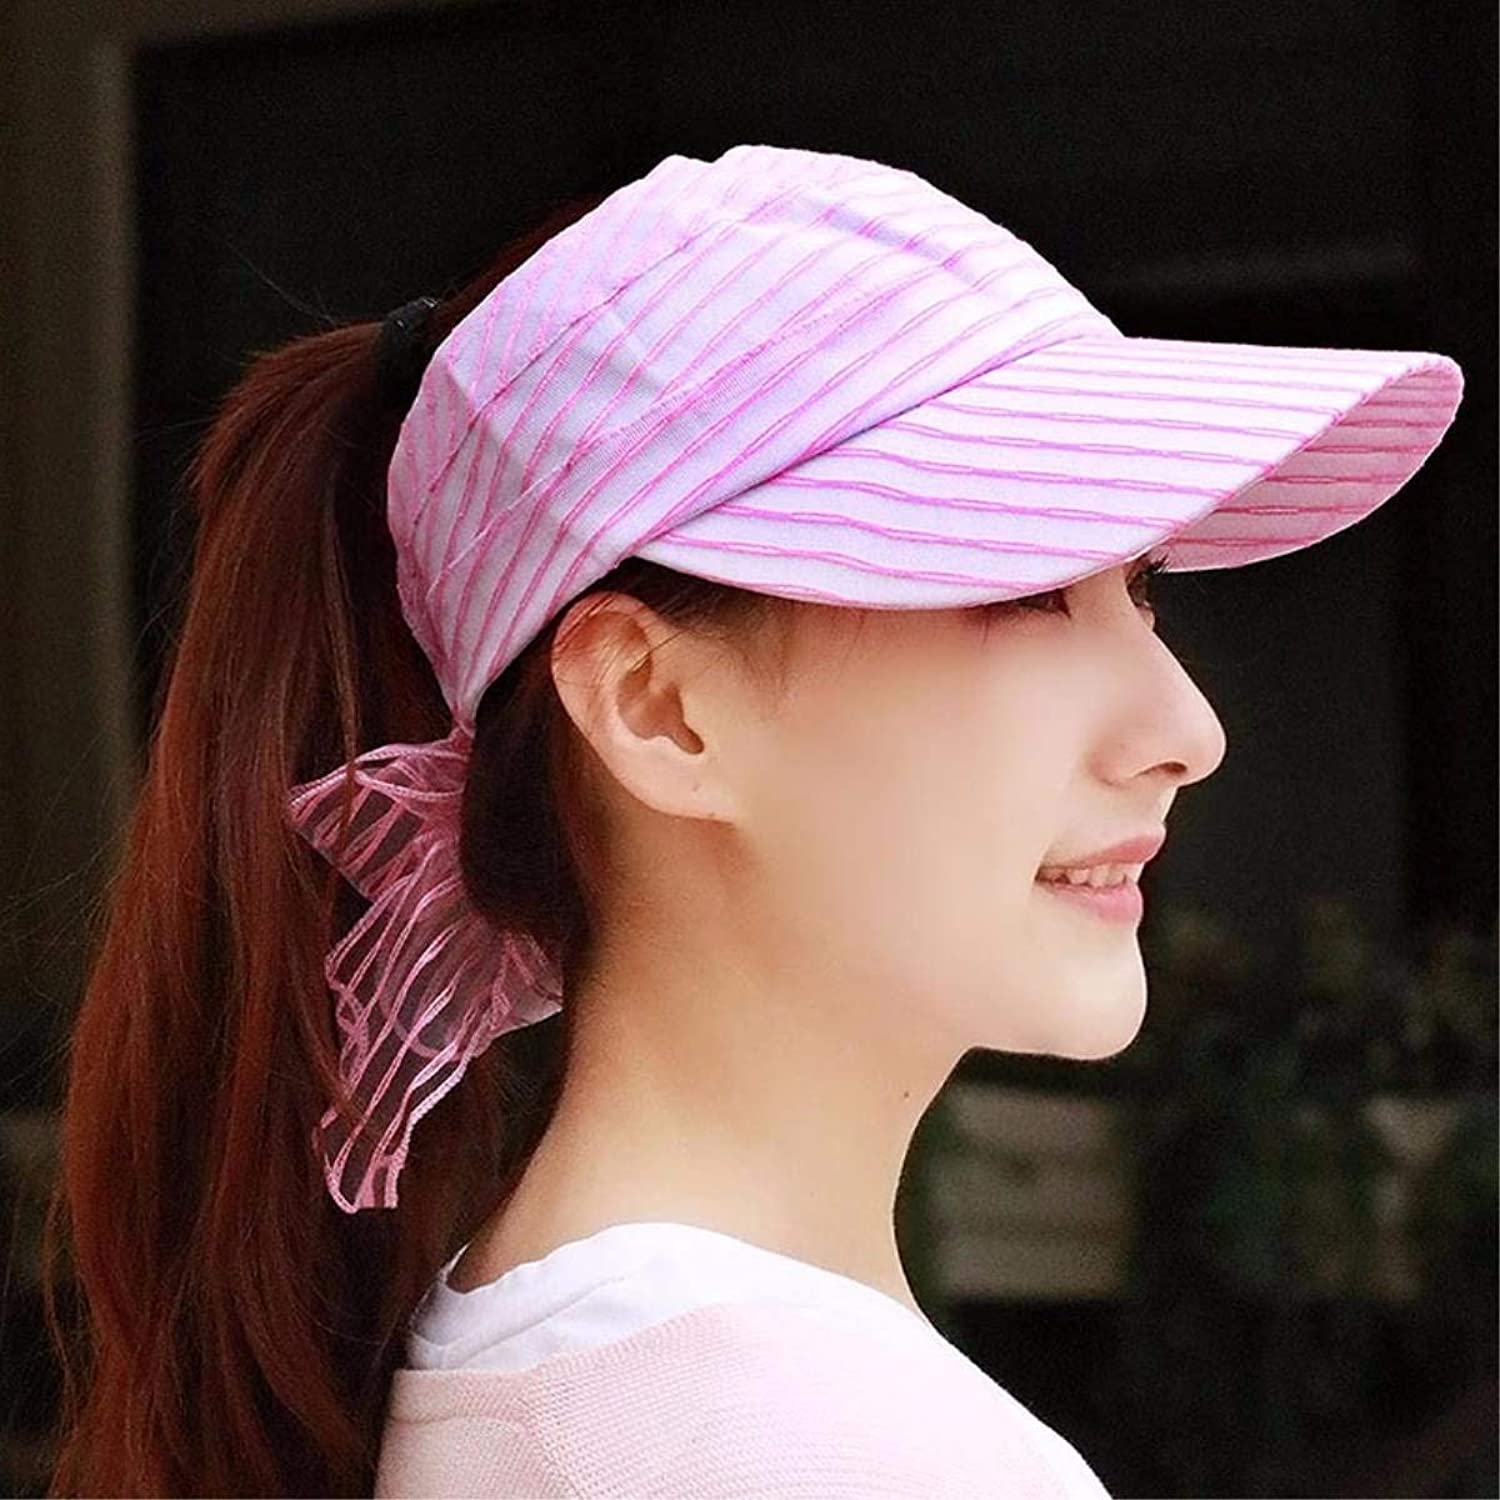 Chuiqingnet Hat the girl breathable snow spinning empty top hat cap visor sun hat riding hat cool Alpine hat cap new